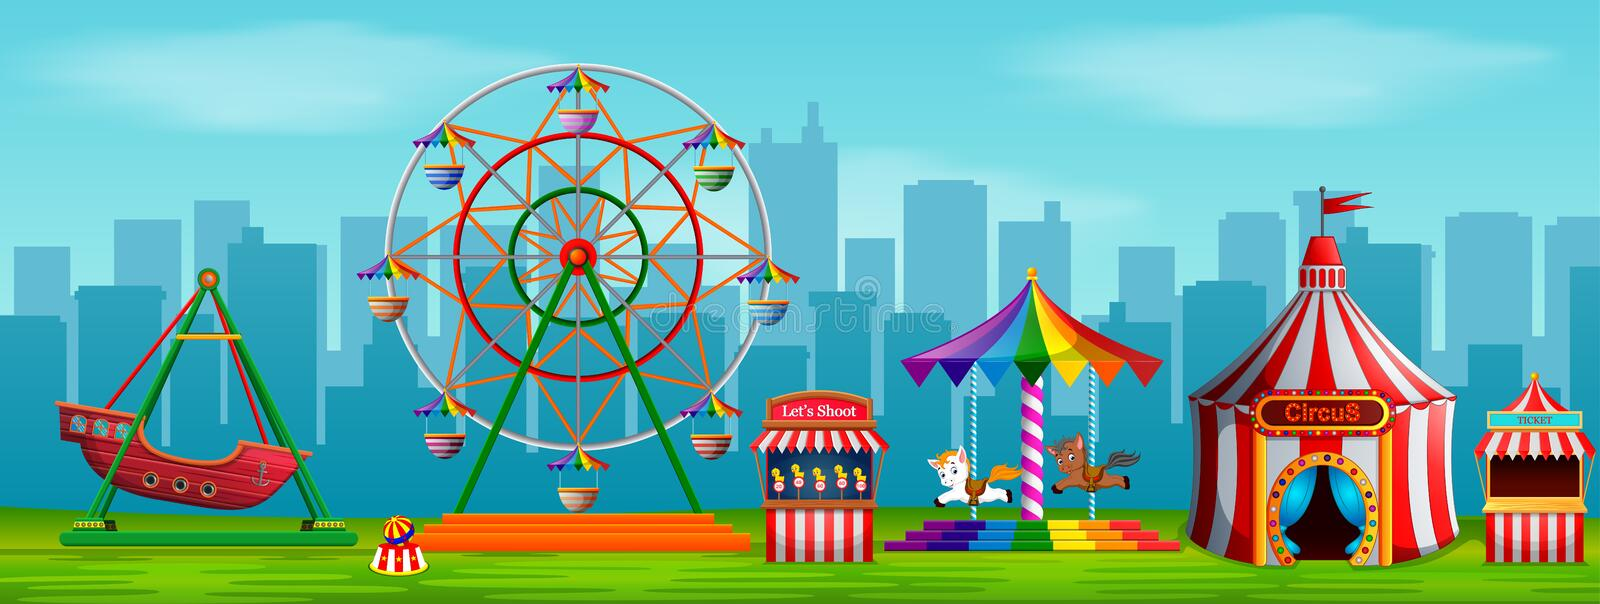 Amusement park scene at daytime with city background. Illustration of Amusement park scene at daytime with city background royalty free illustration